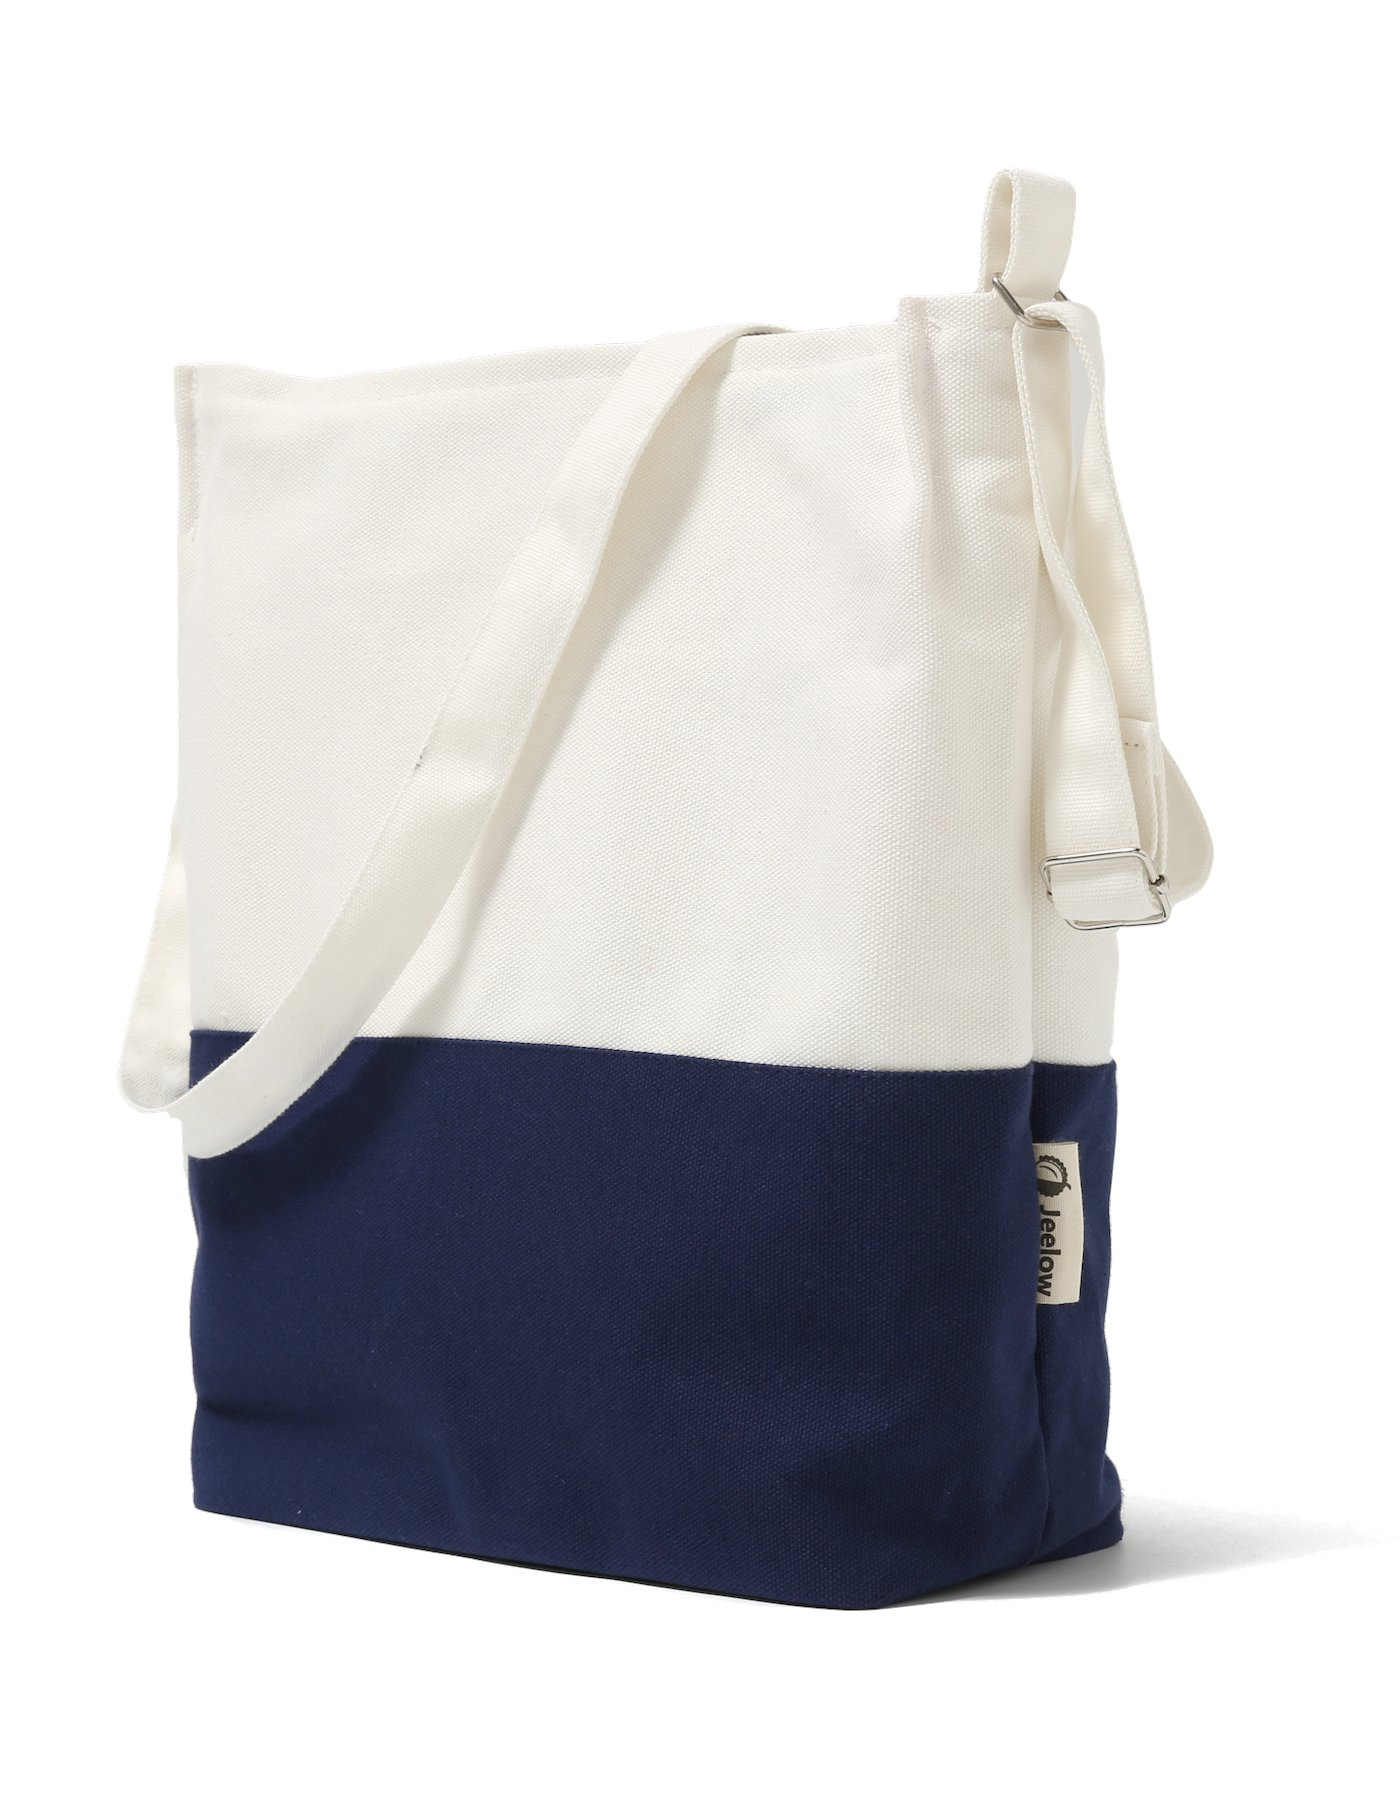 Canvas Tote Shoulder Bag Crossbody Bag Two Toned (White and Navy)